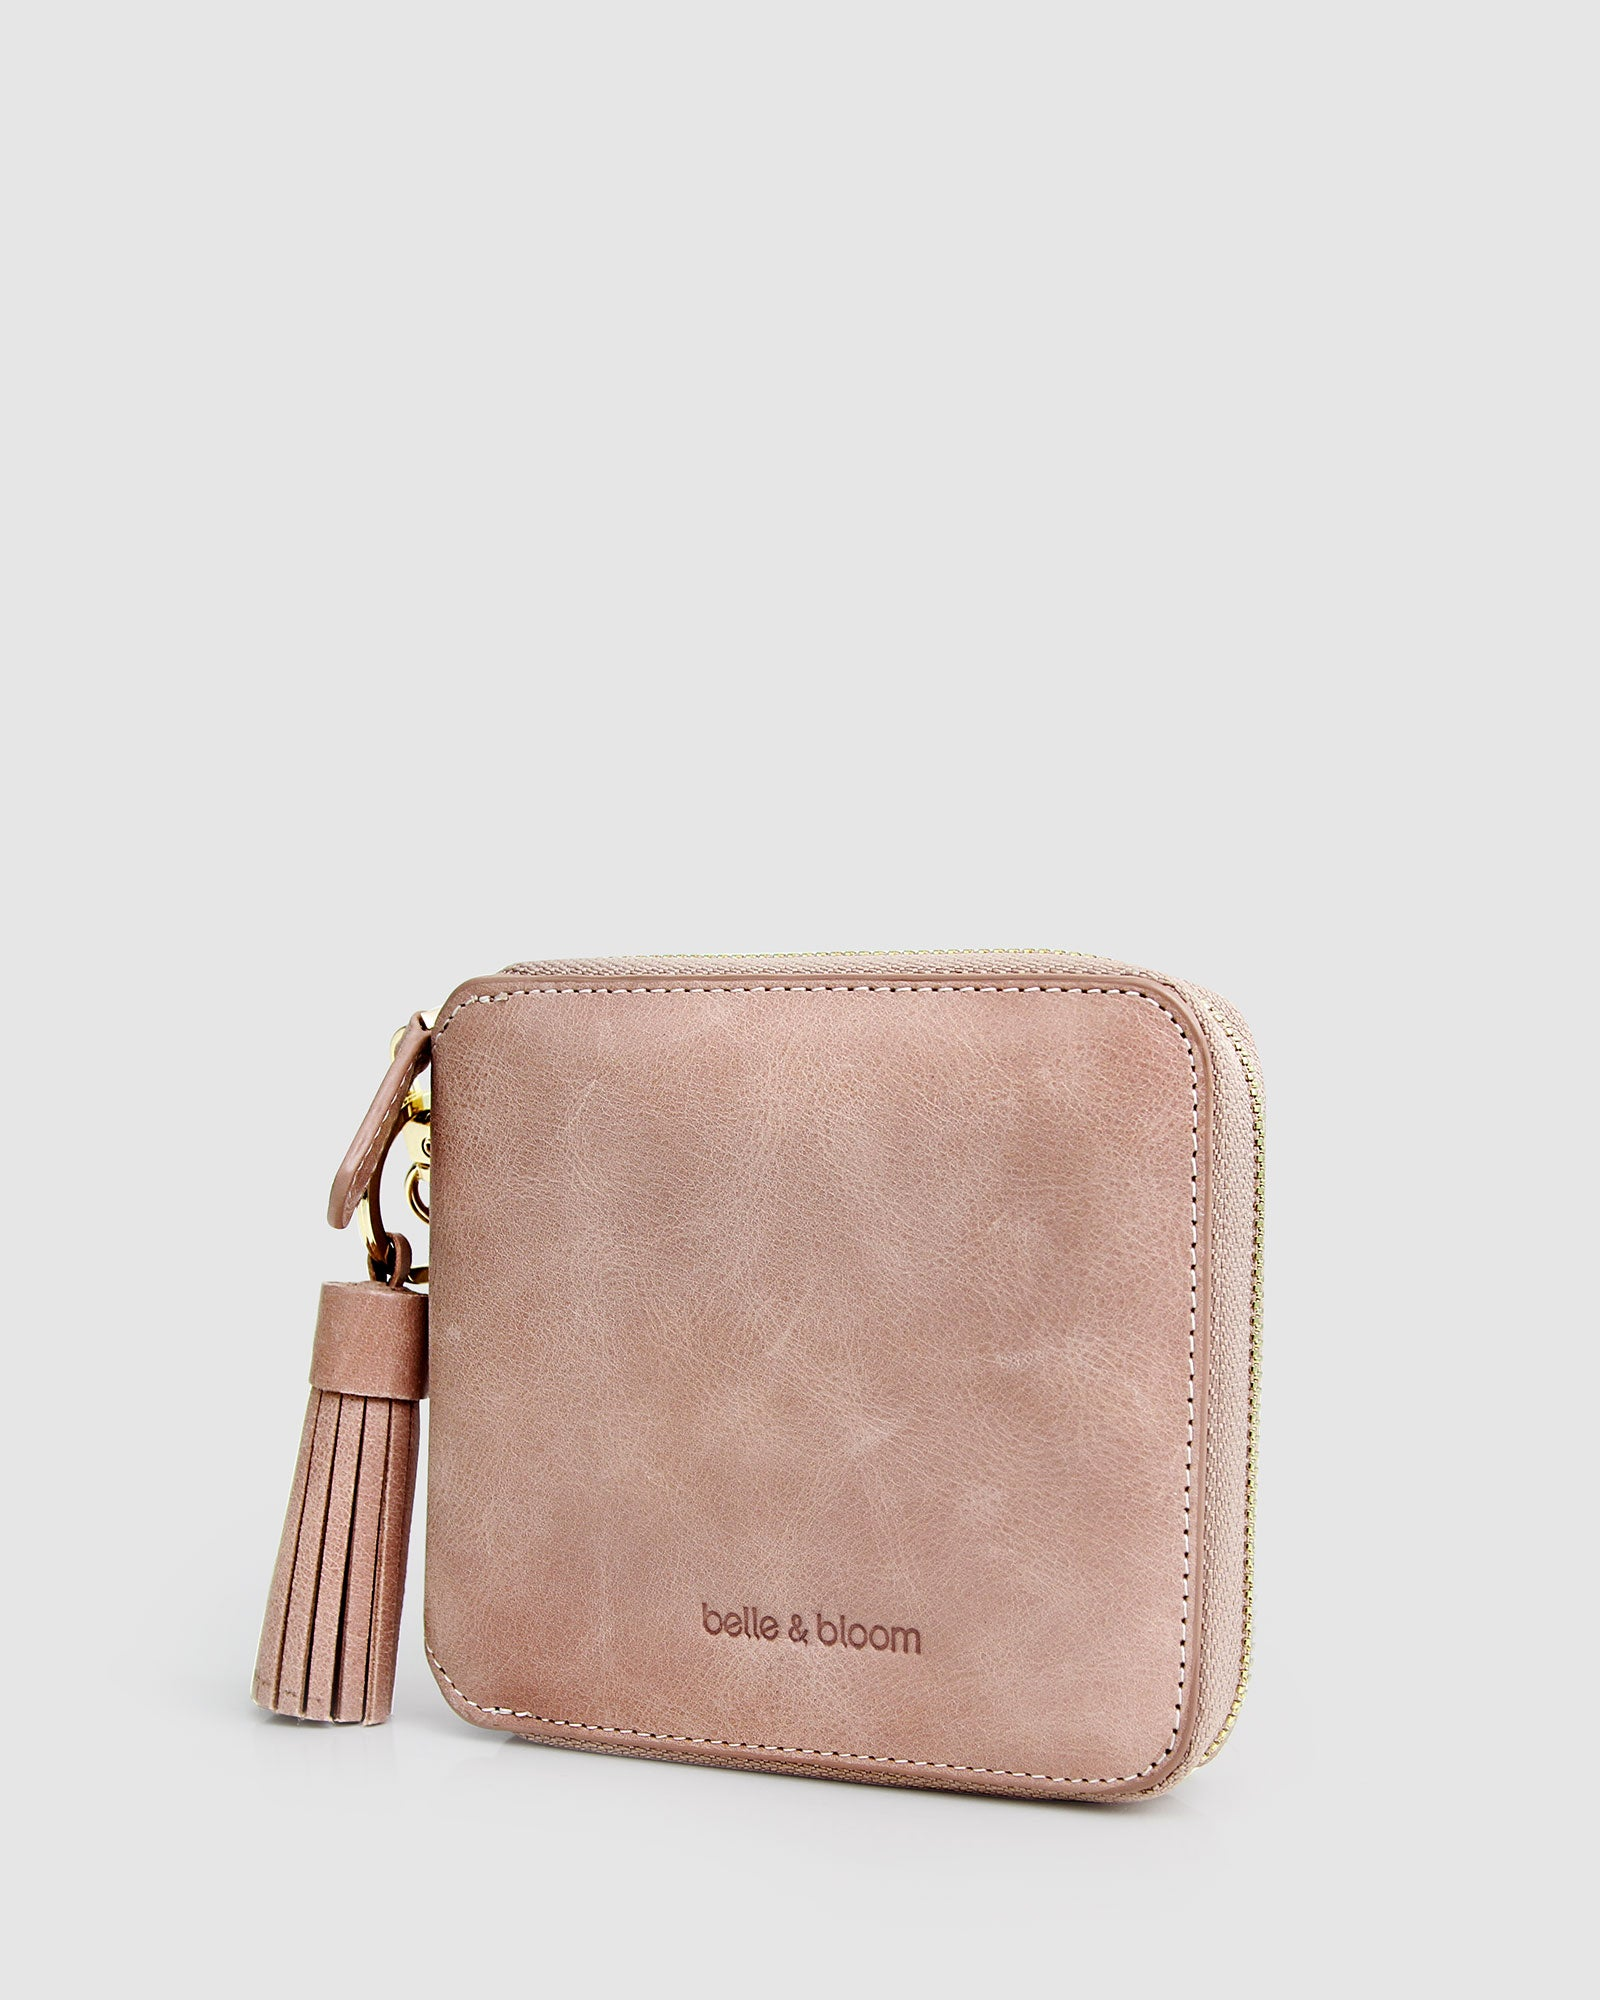 Nora Leather Wallet - Dusty Rose